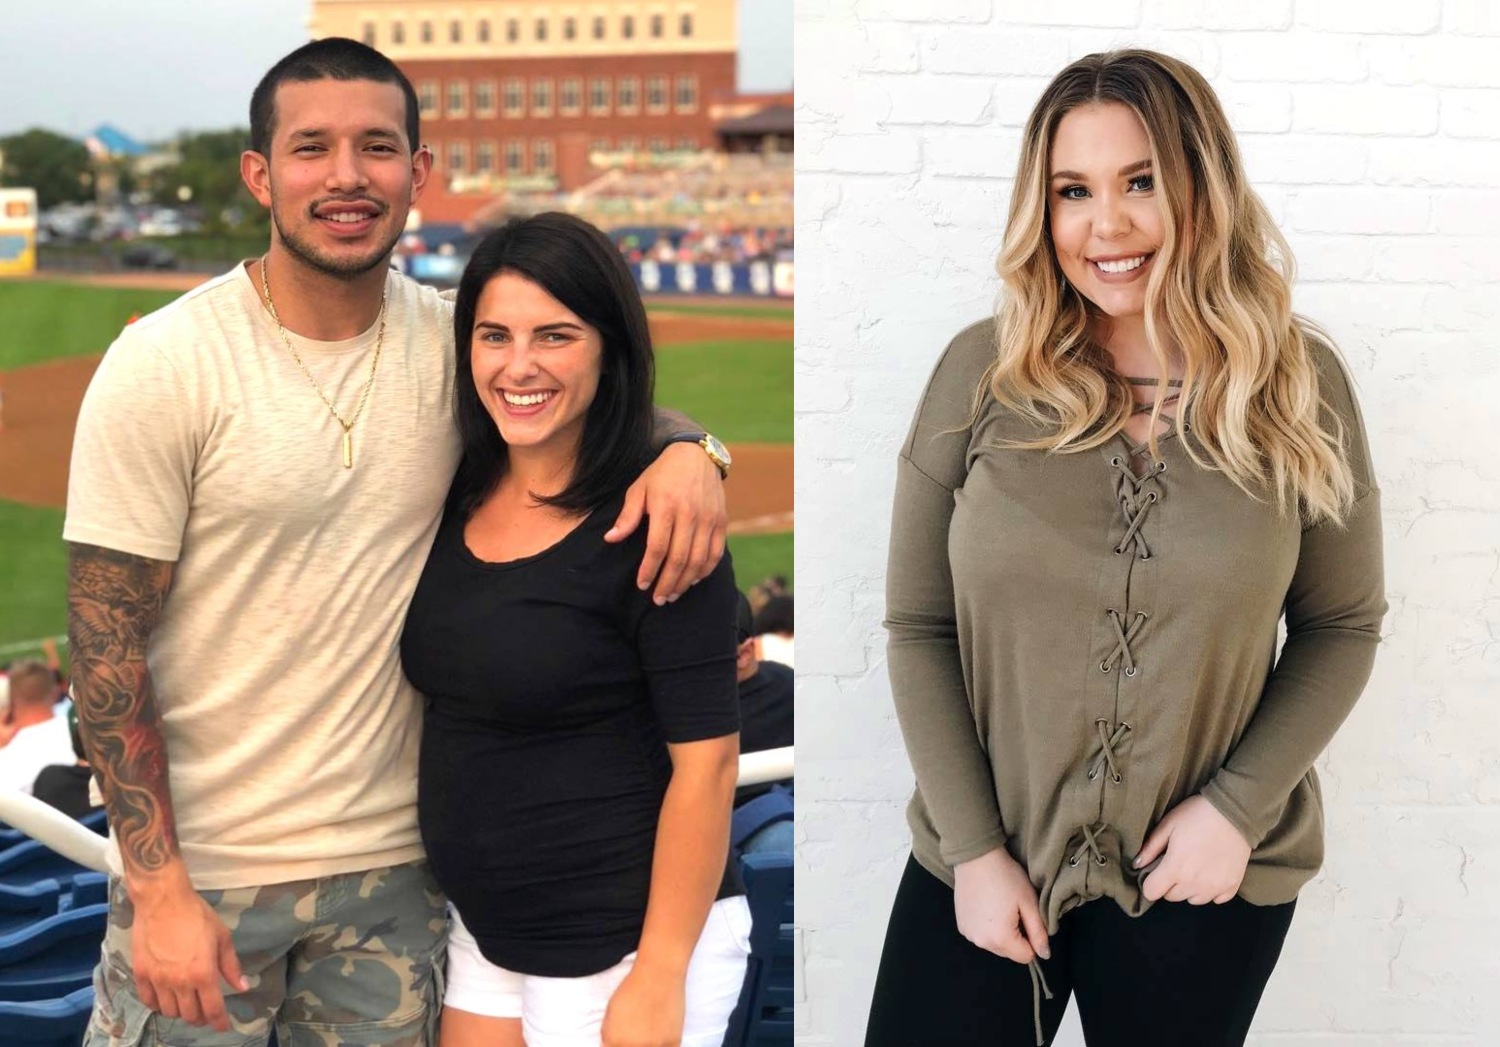 kailyn-lowry-apologizes-to-lauren-comeau-for-embarrassing-her-by-revealing-javi-marroquin-asked-her-to-hook-up